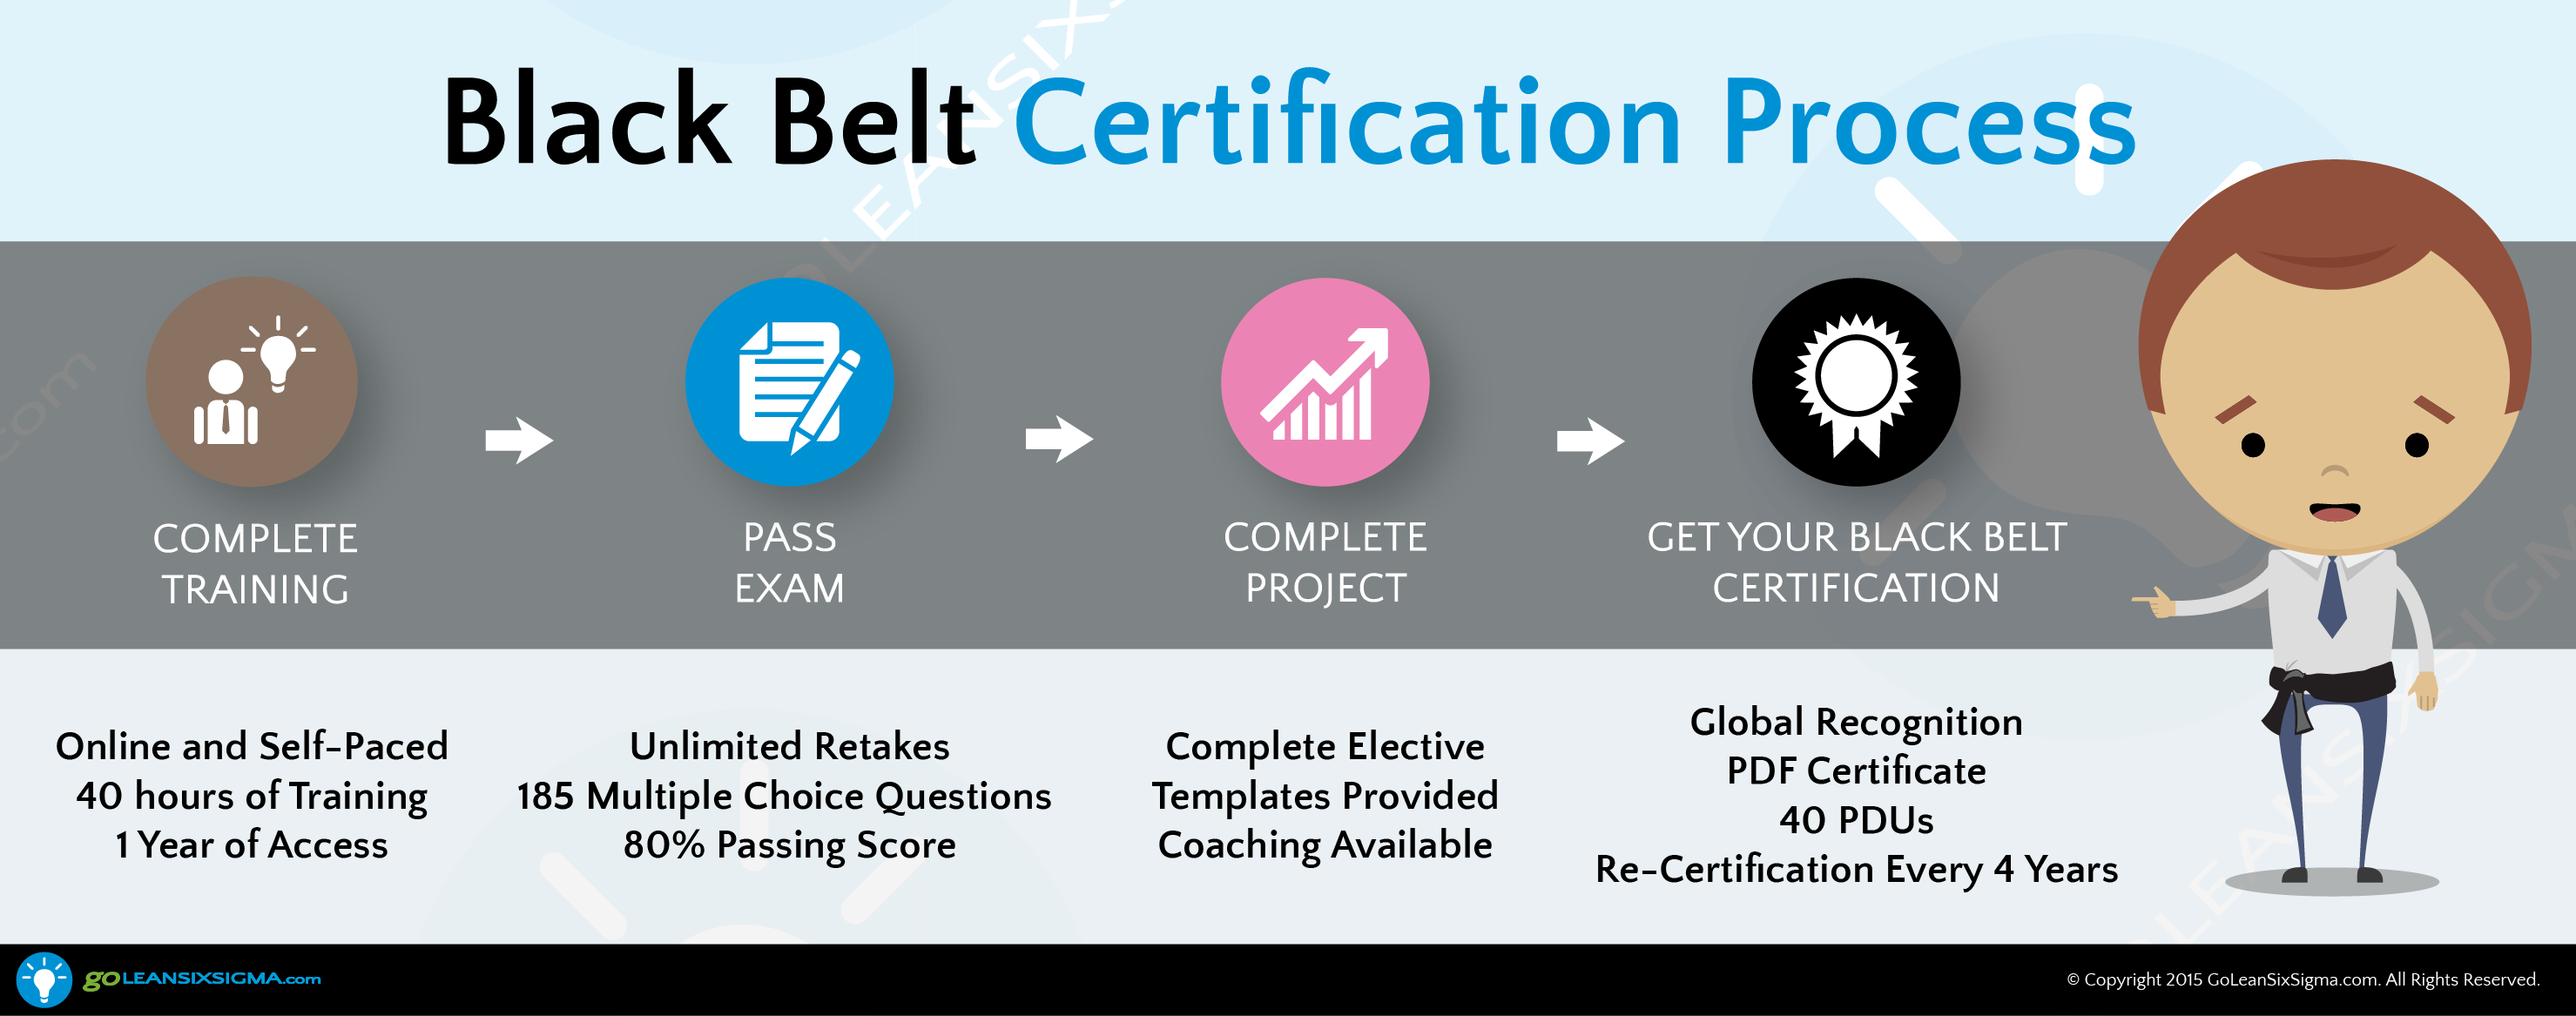 GLSS_CertificationProcess_Black Belt Cert_pro